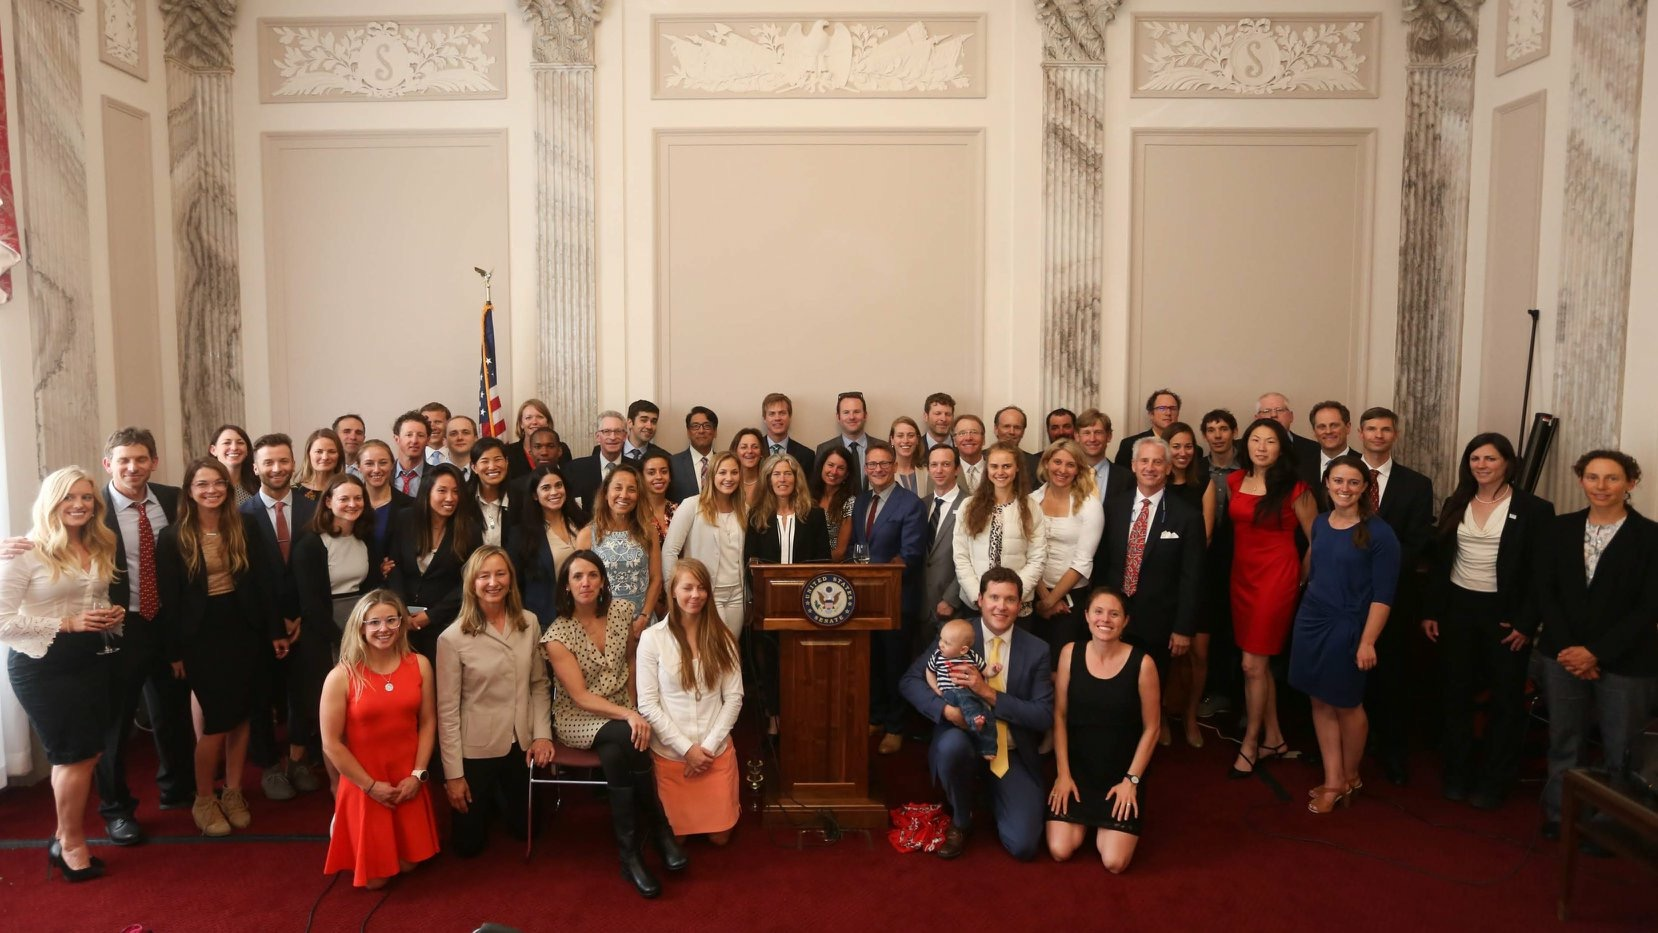 Powers and the many attendees of the 2019 Climb the Hill event in D.C. (photo: Stephen Gosling).